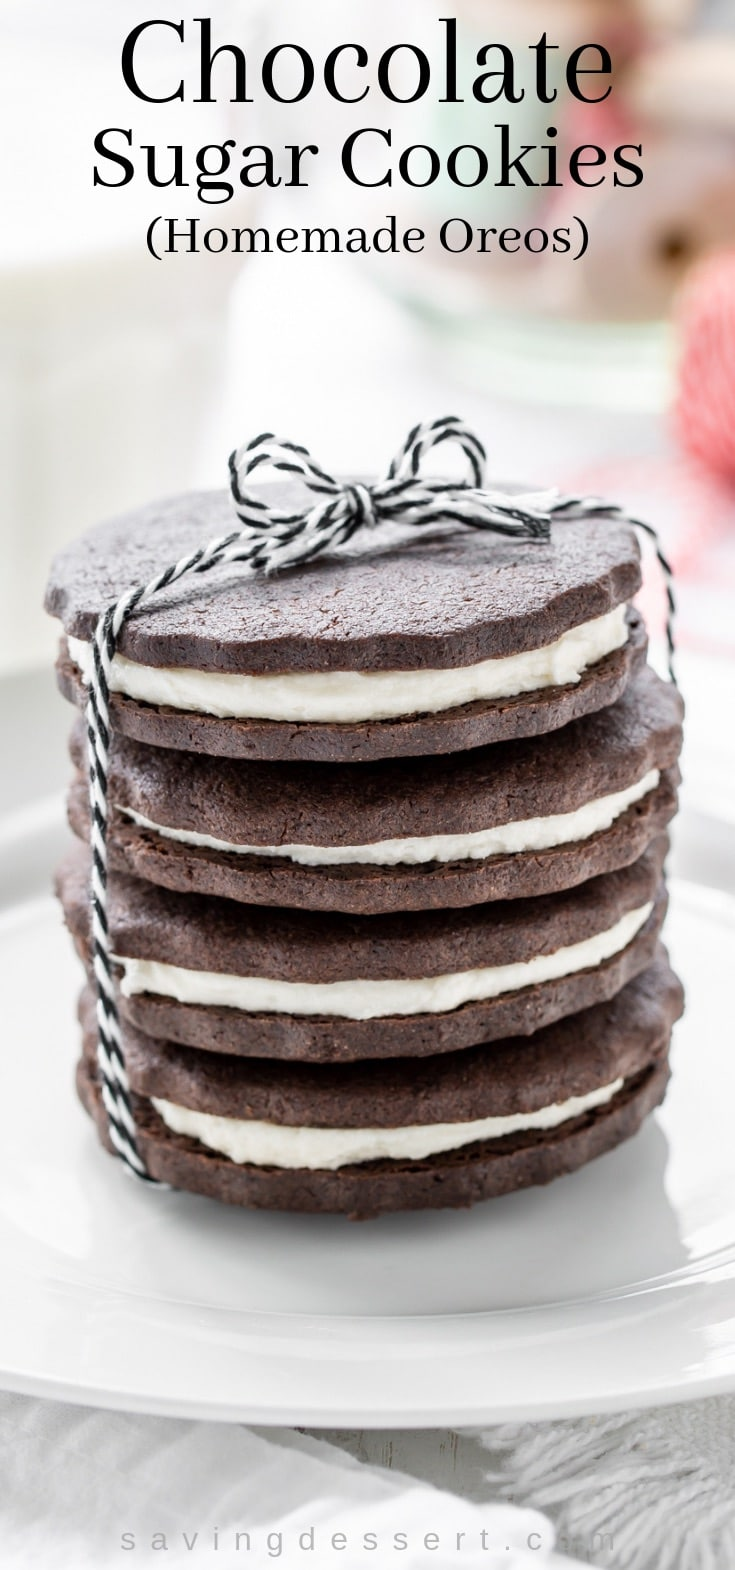 A stack of chocolate sugar cookies with a vanilla cream filing wrapped up with a black and white string